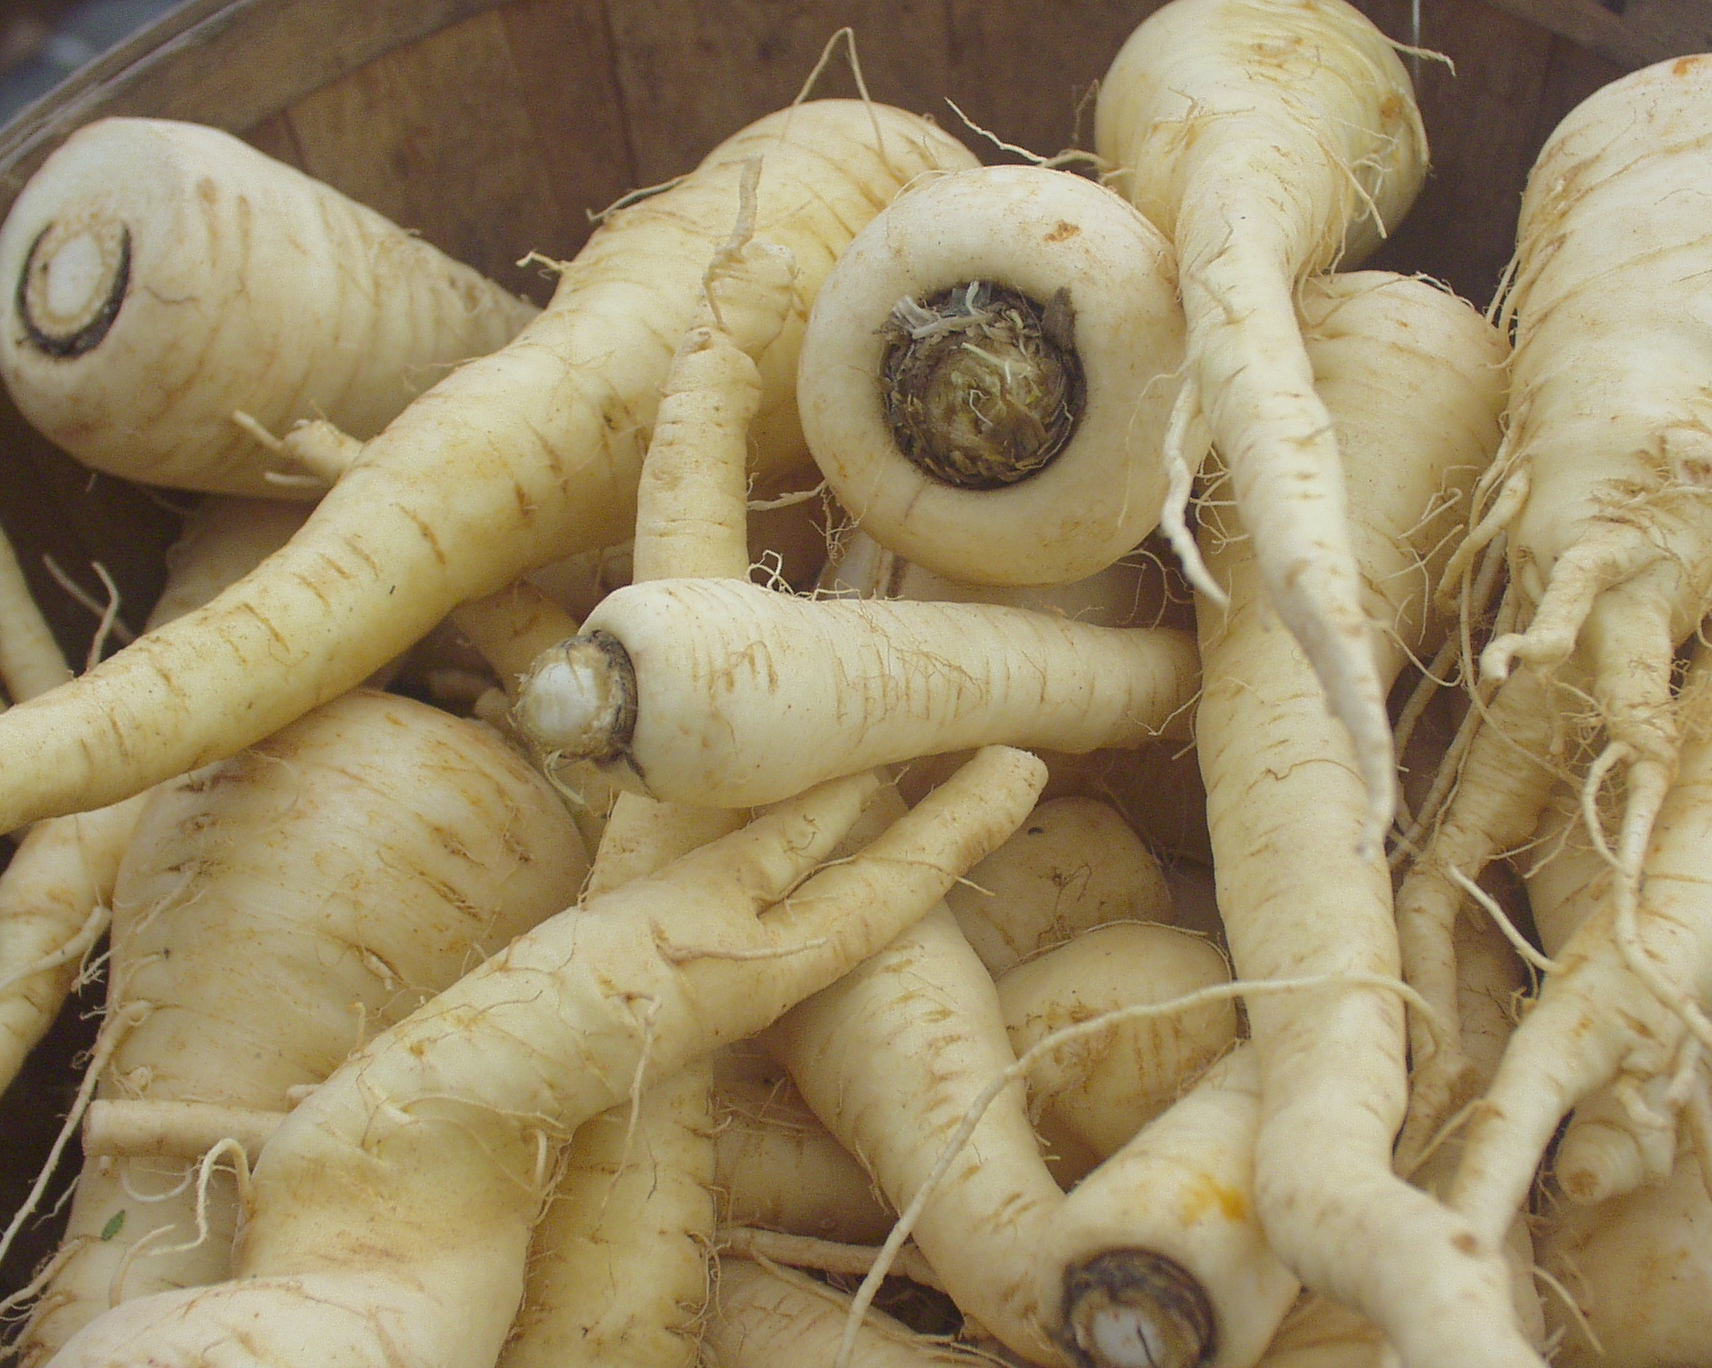 Nash's parsnips at Ballard Farmers Market. Photo copyright 2009 by Zachary D. Lyons.